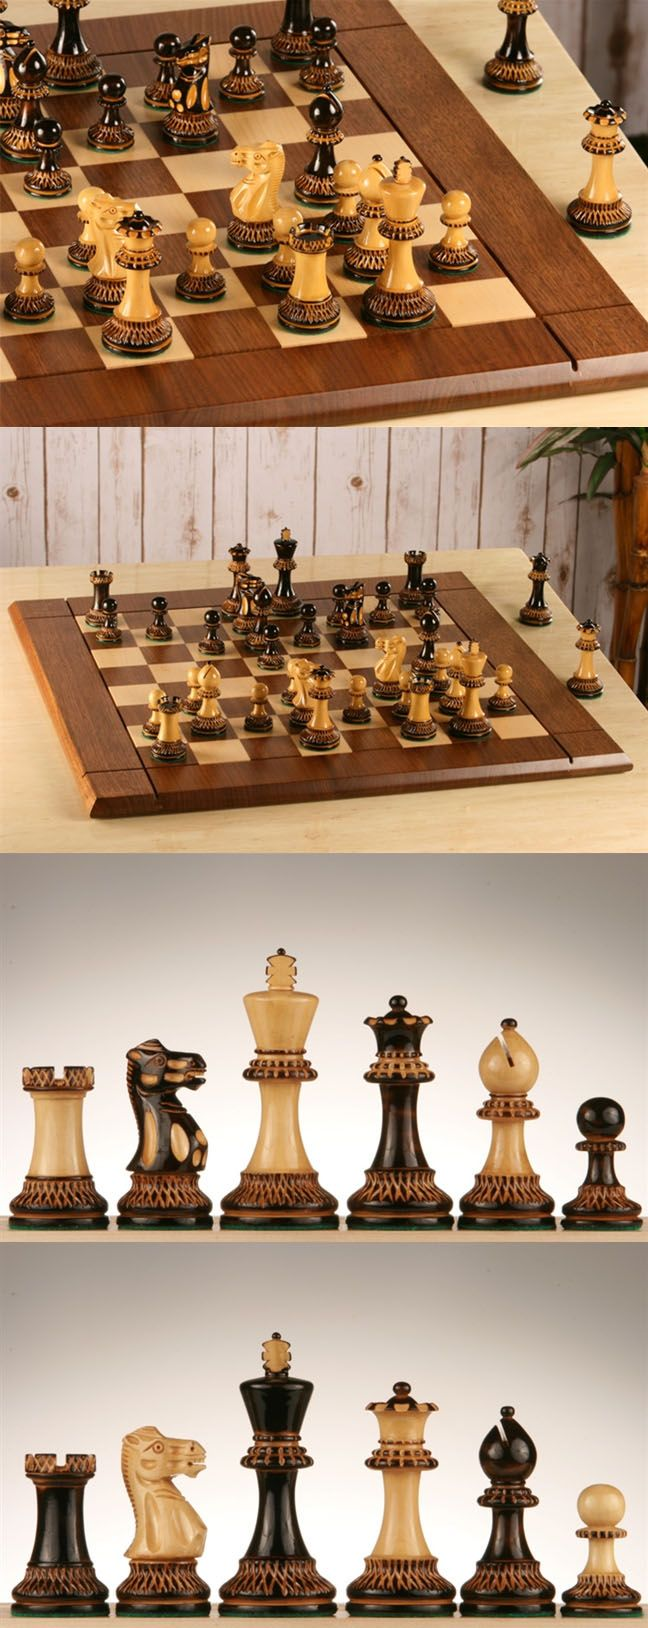 Wonderful For Display Or Frequent Play, This Heirloom Quality Chess Set Will Be  Enjoyed For Years